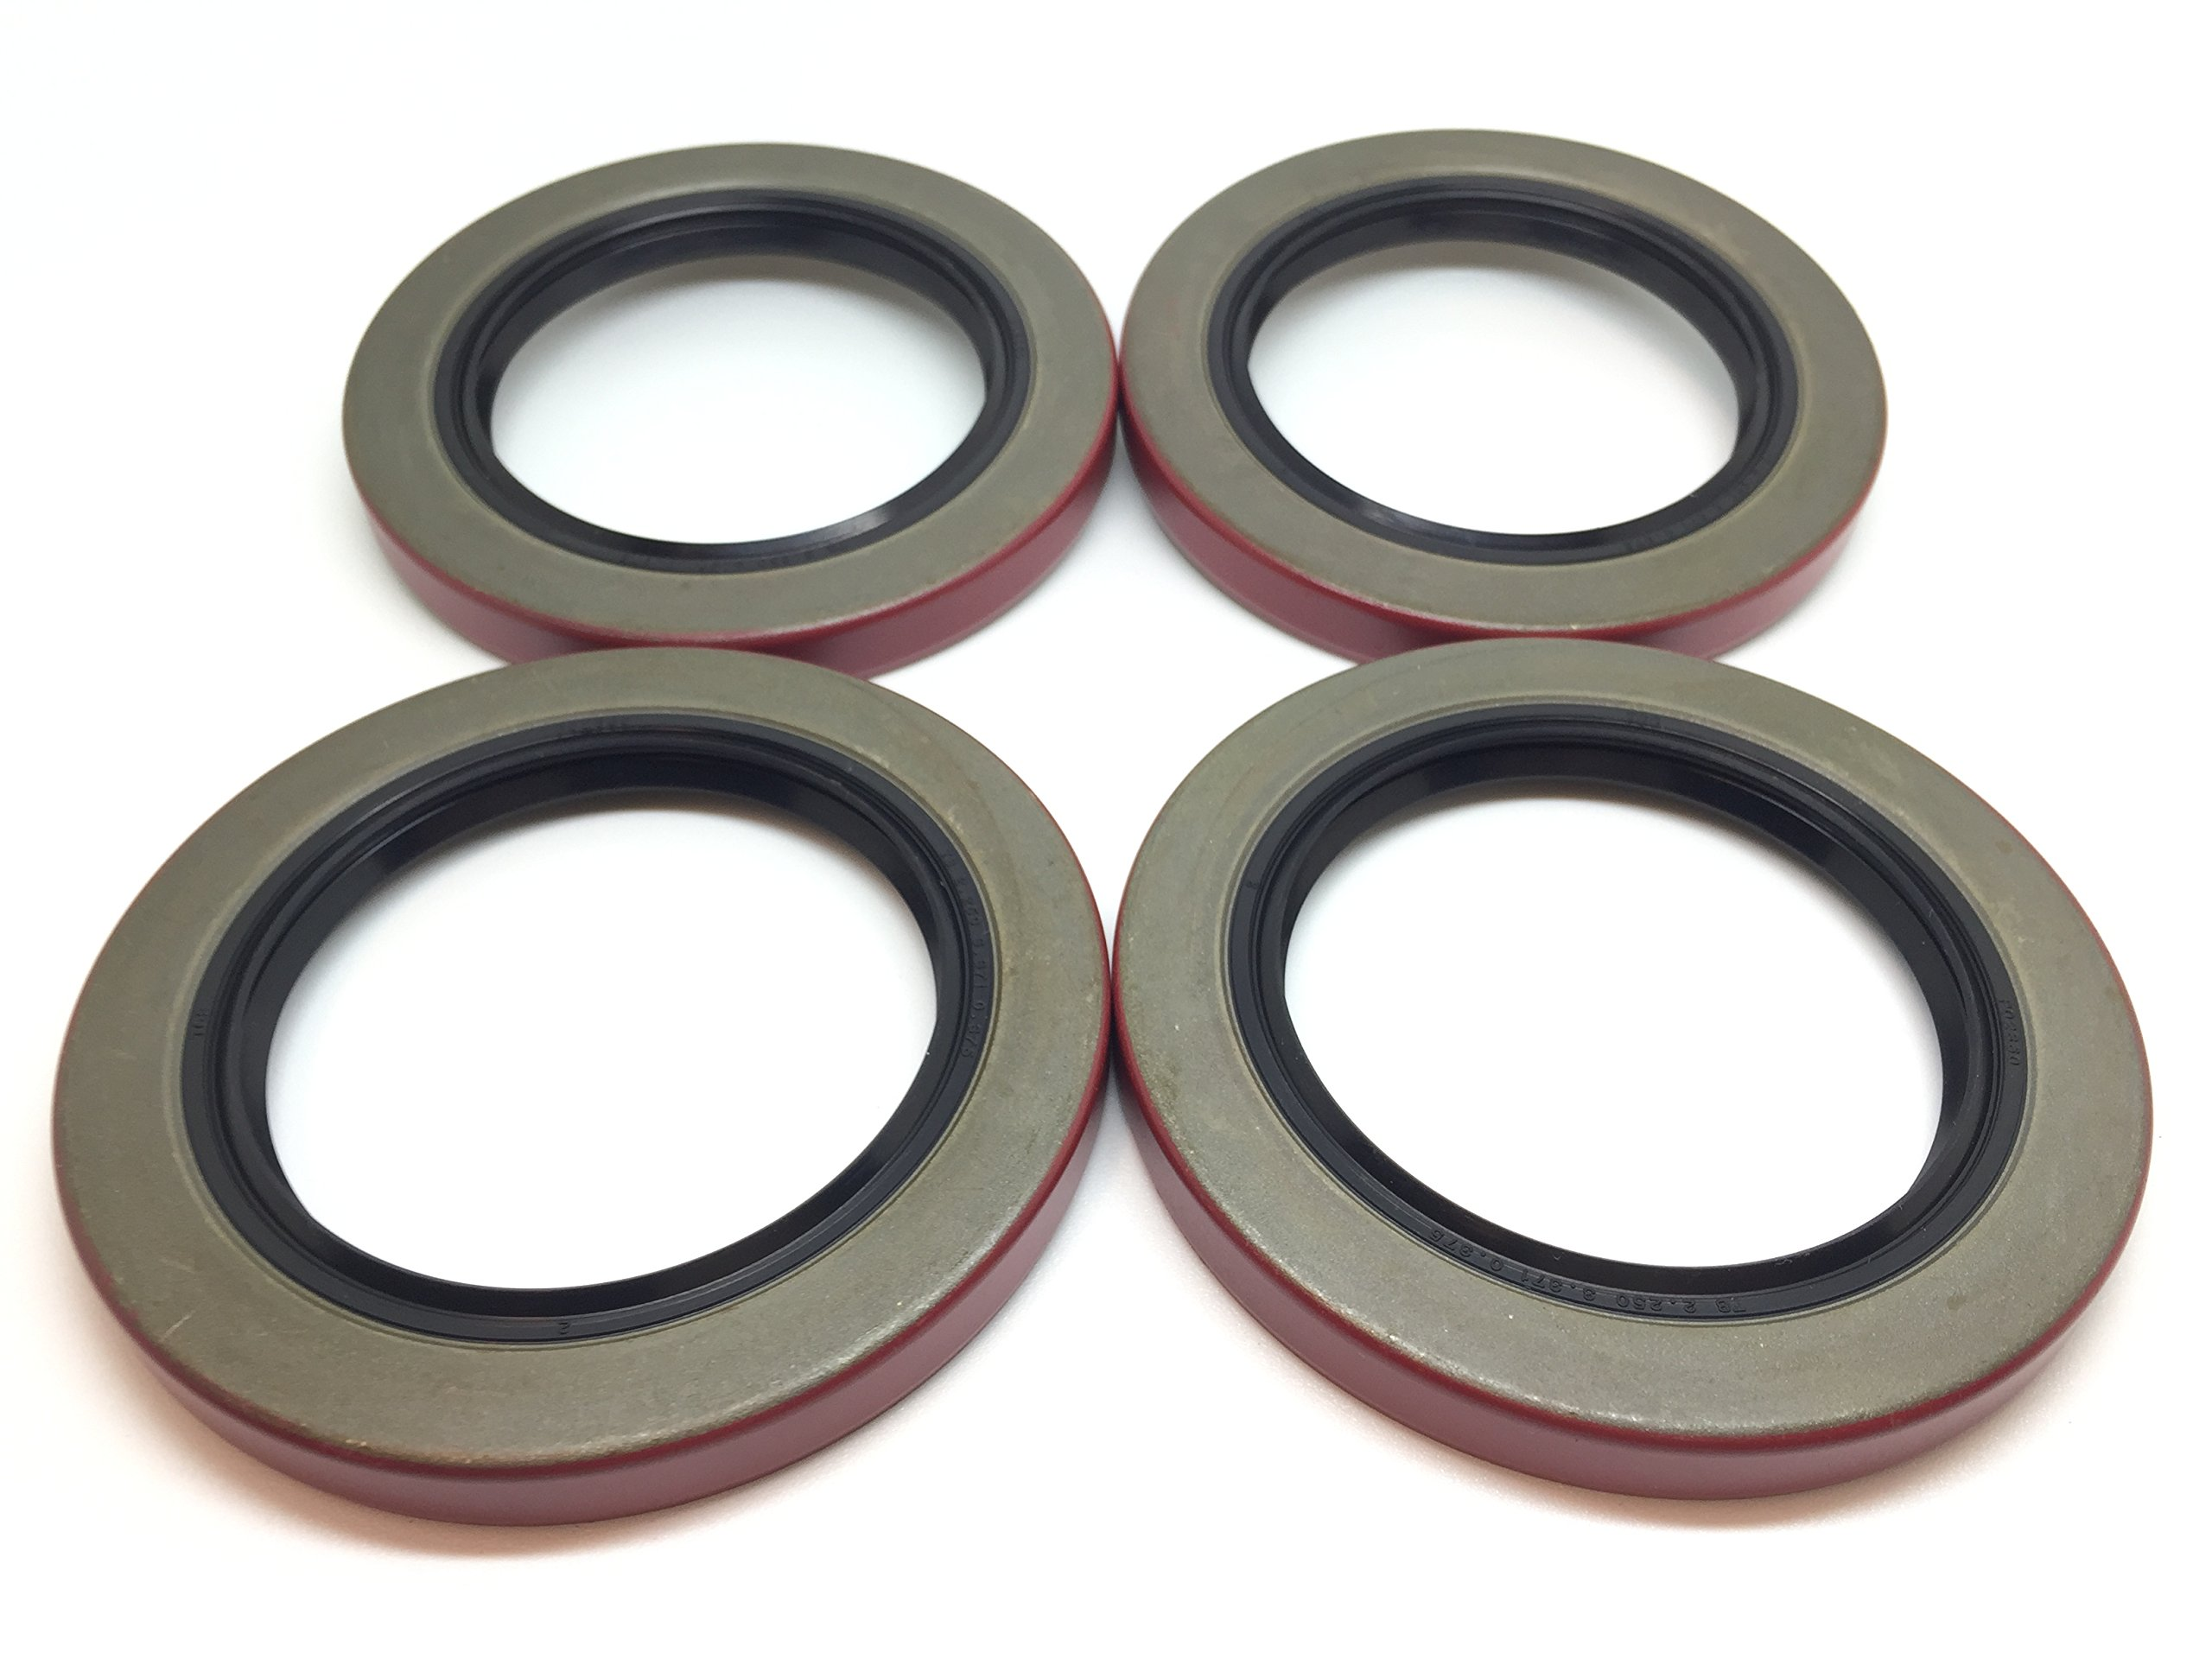 (Pack of 4) WPS Trailer Hub Wheel Grease Seal 10-36 (22333TB) 2.250'' I.D. for 5200-7000# Trailer Axles